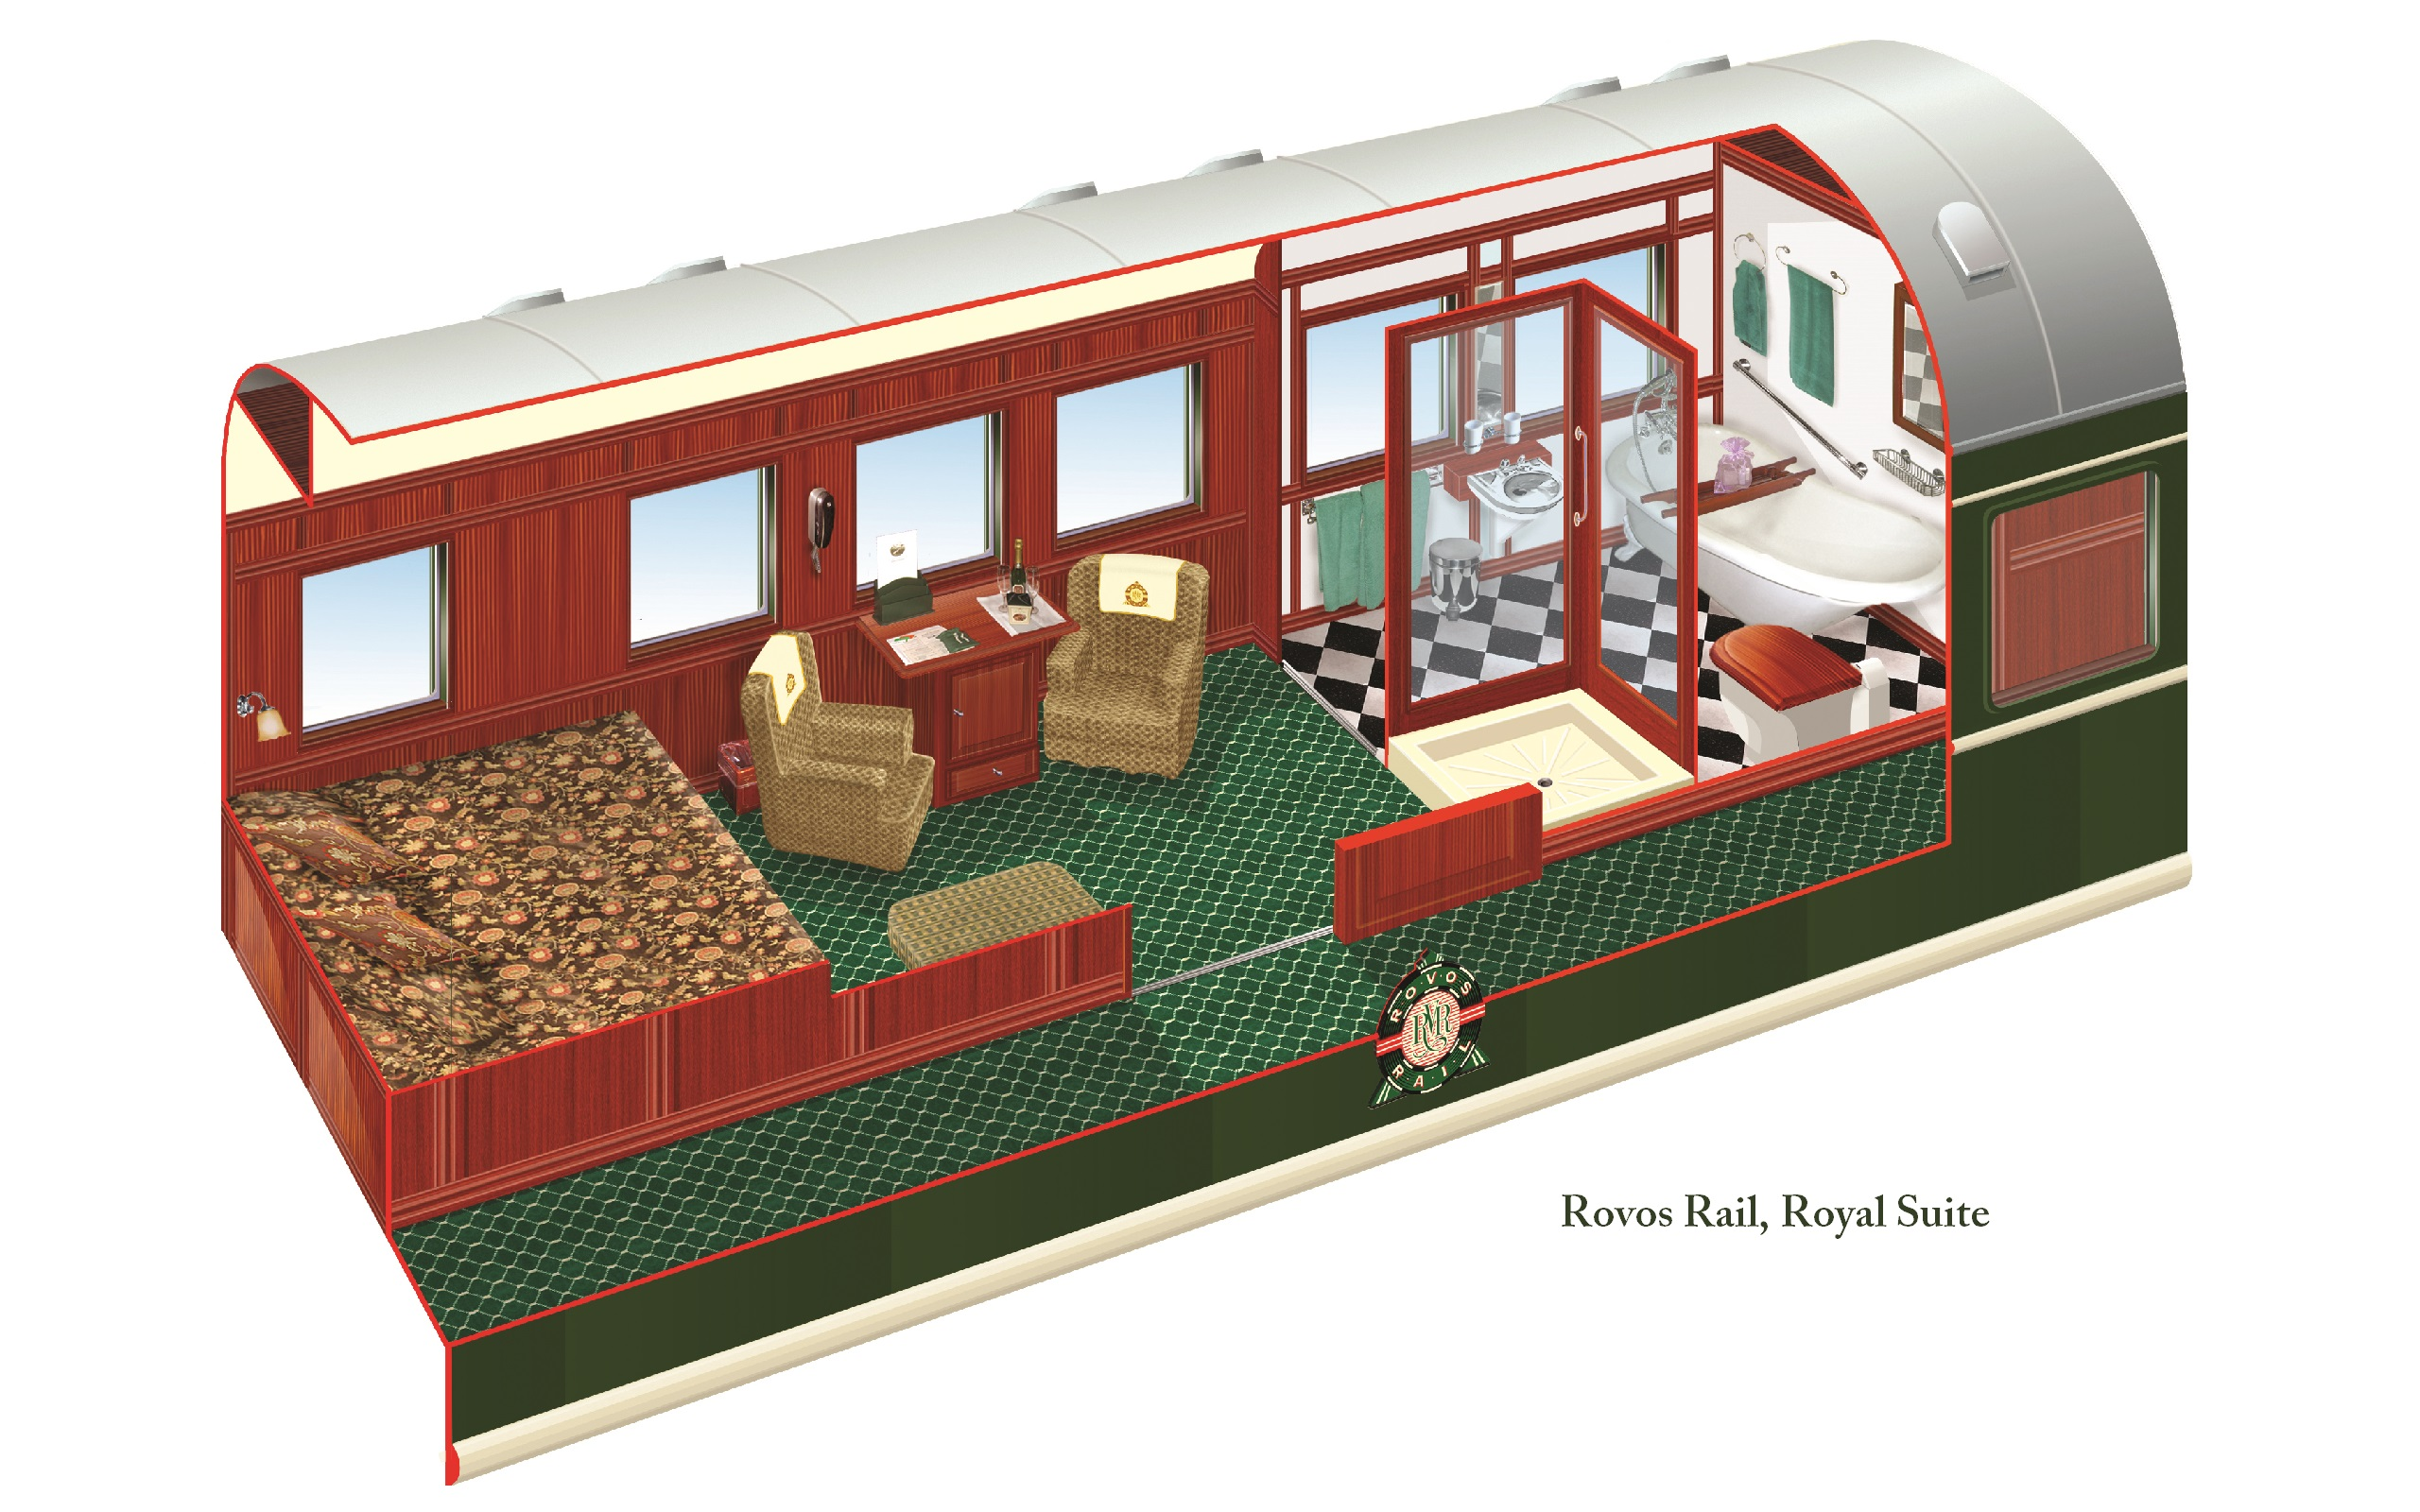 Rovos Rail Trains Offer All The Same Amenities As A 5-Star Hotel